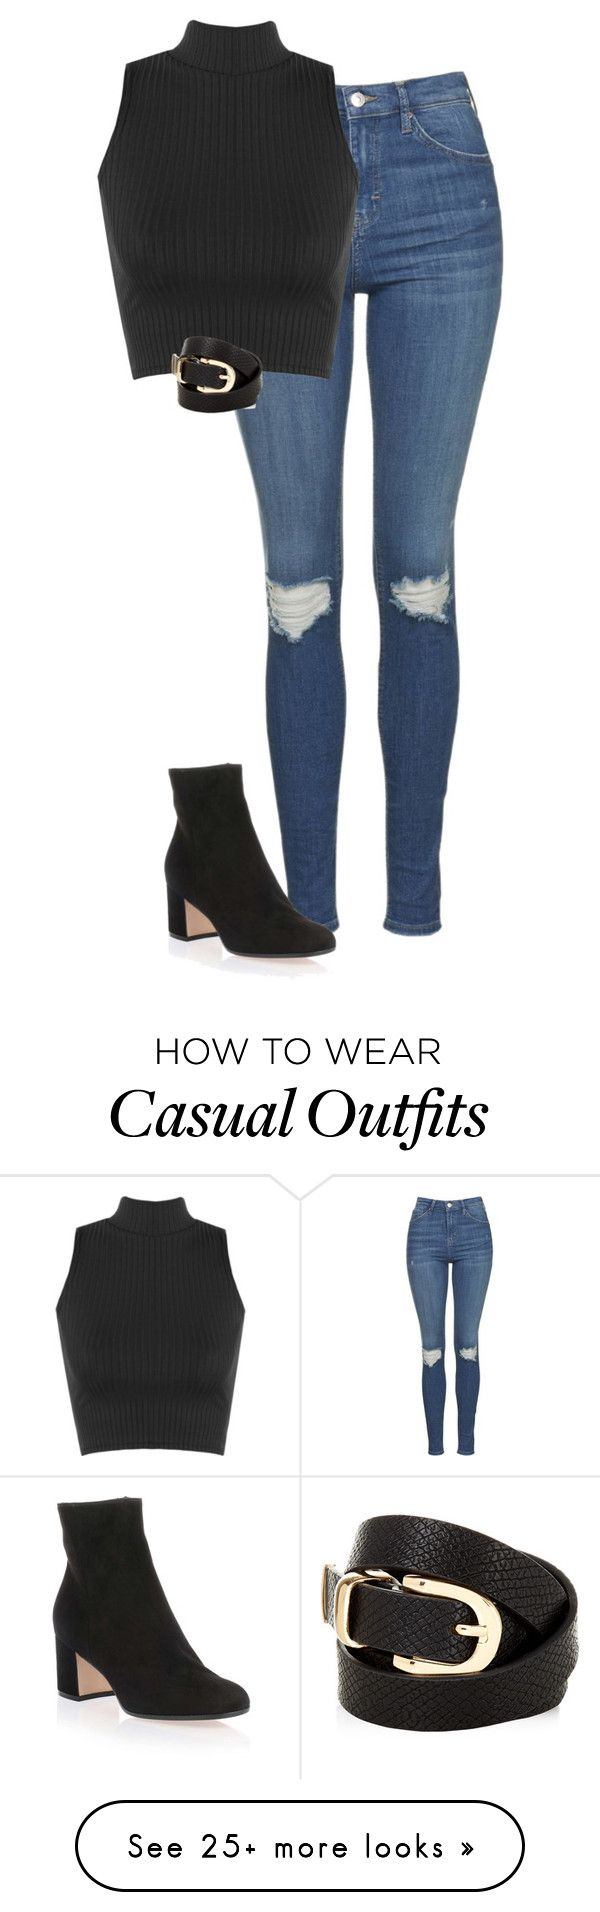 """""""Simple & Casual"""" by kaciwiens on Polyvore featuring Topshop, WearAll, Accessorize and Gianvito Rossi"""